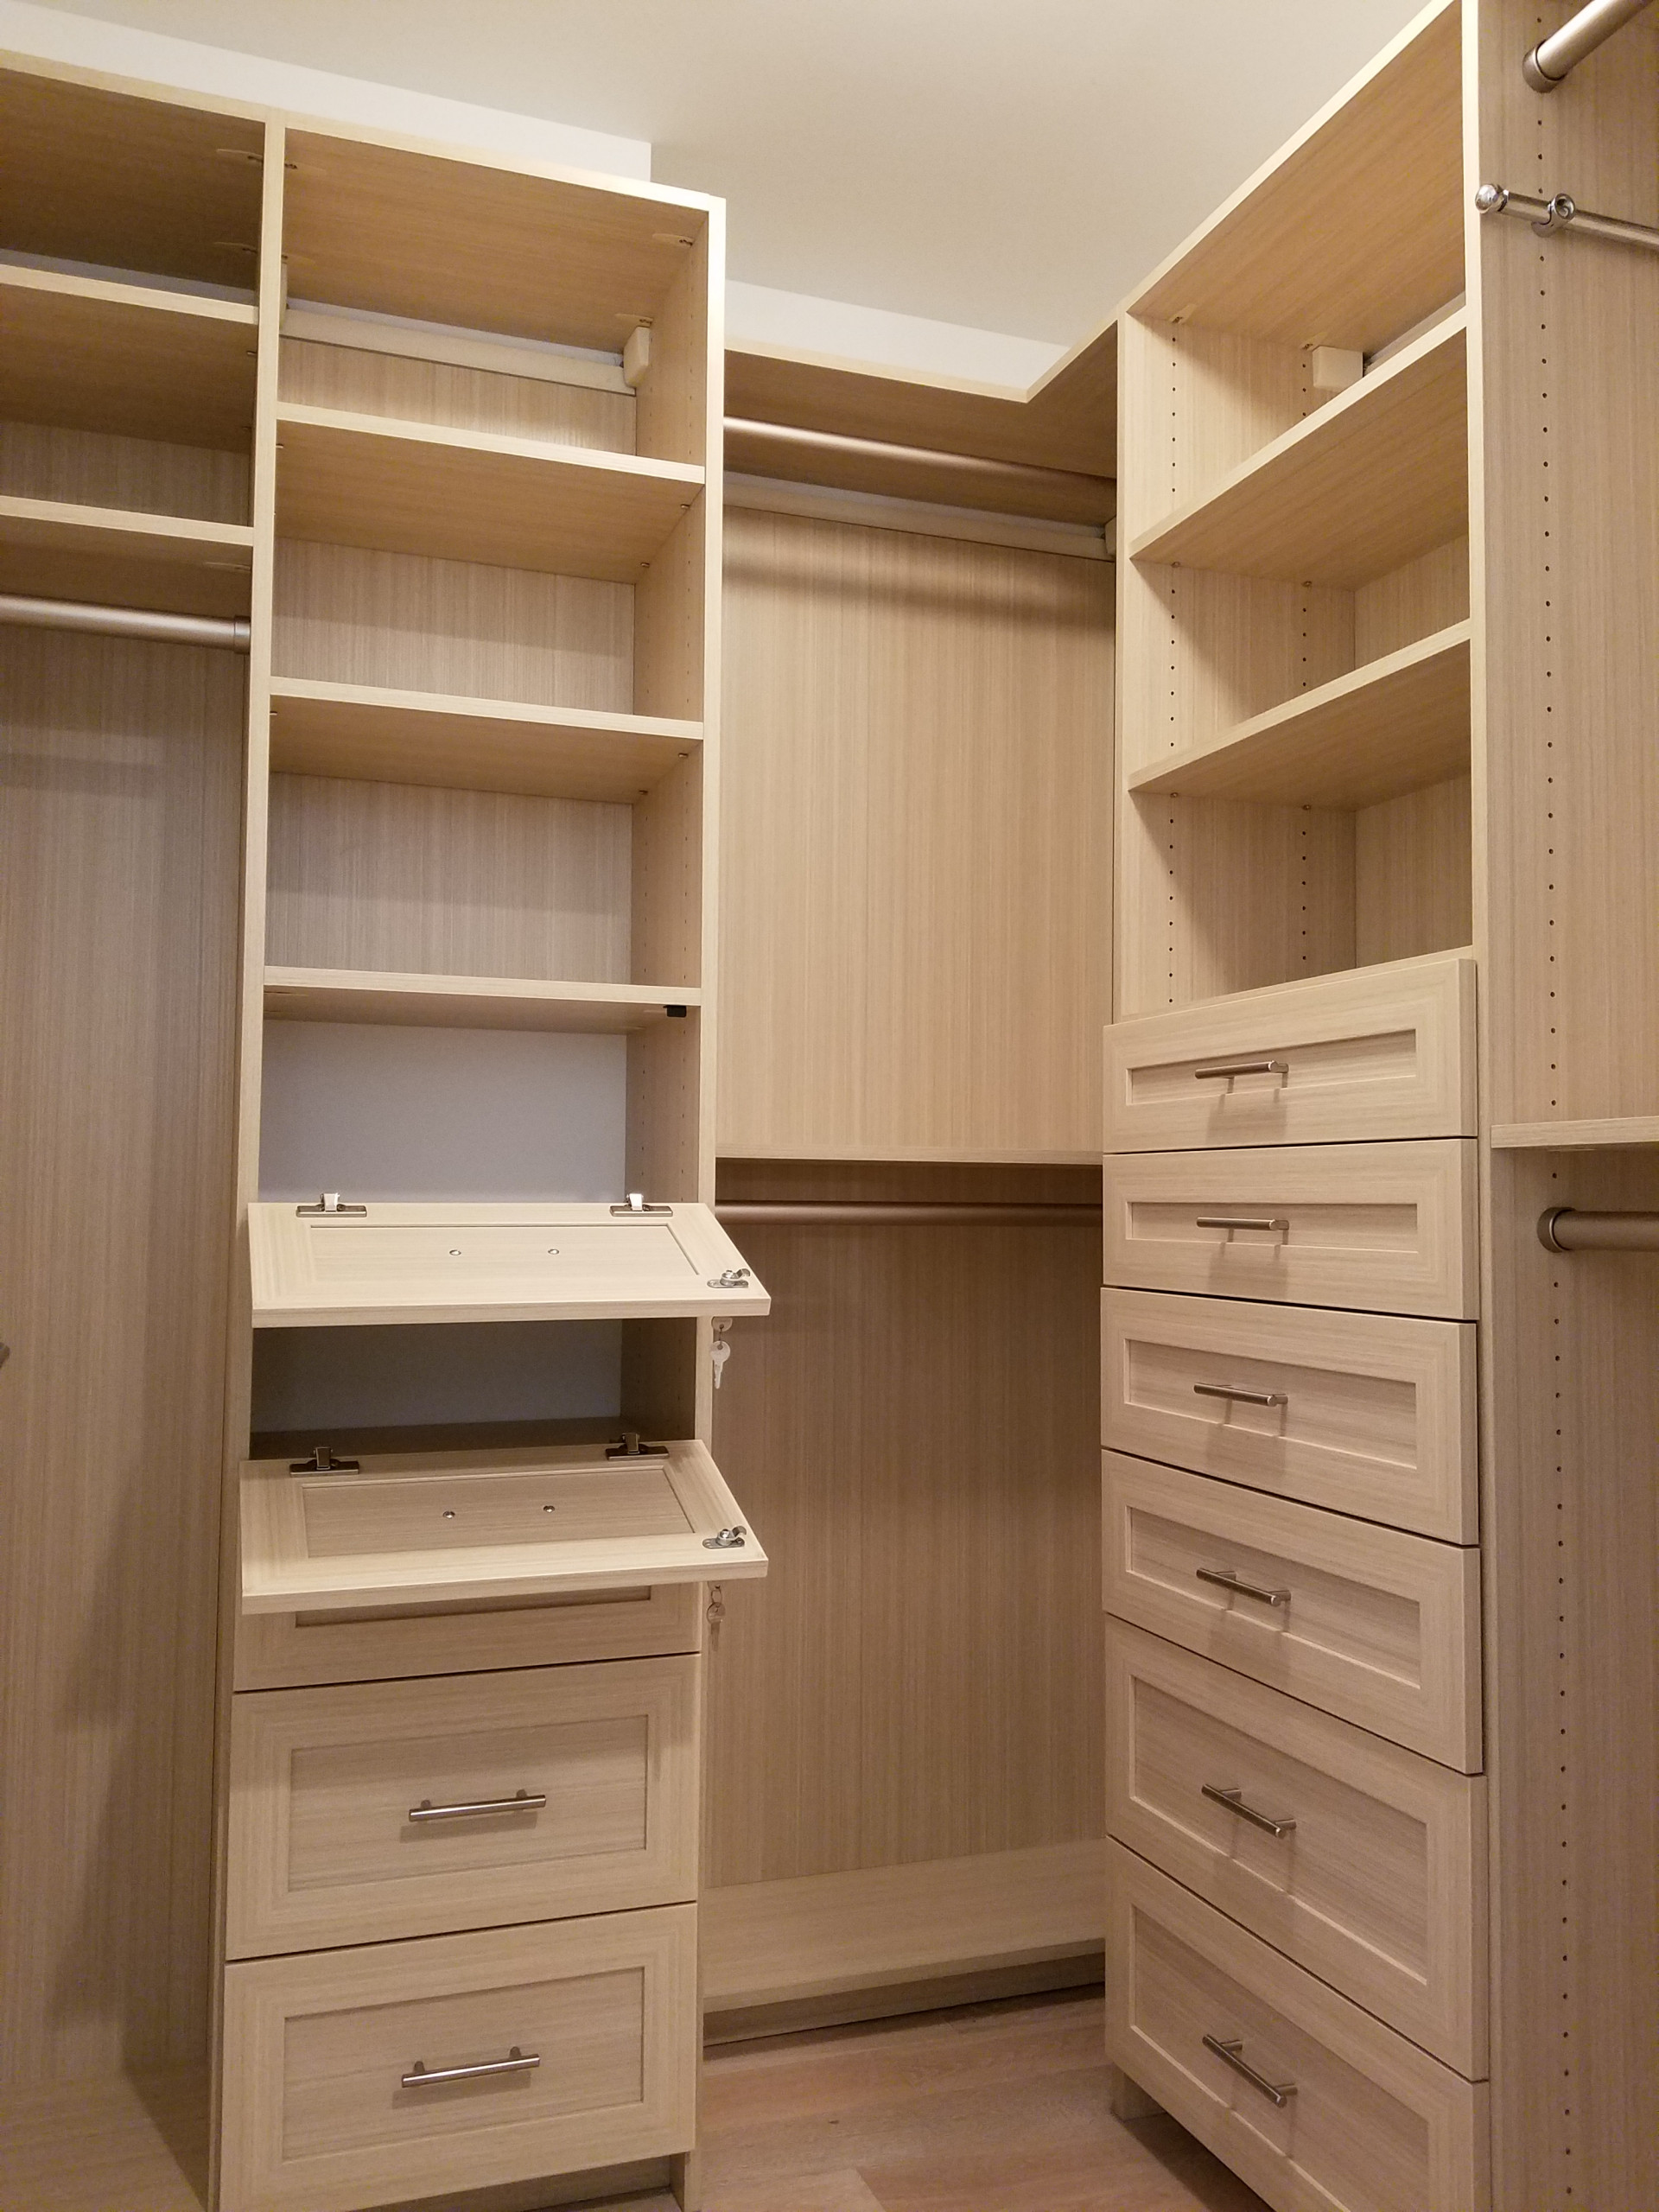 75 Beautiful Small Walk In Closet Pictures Ideas February 2021 Houzz